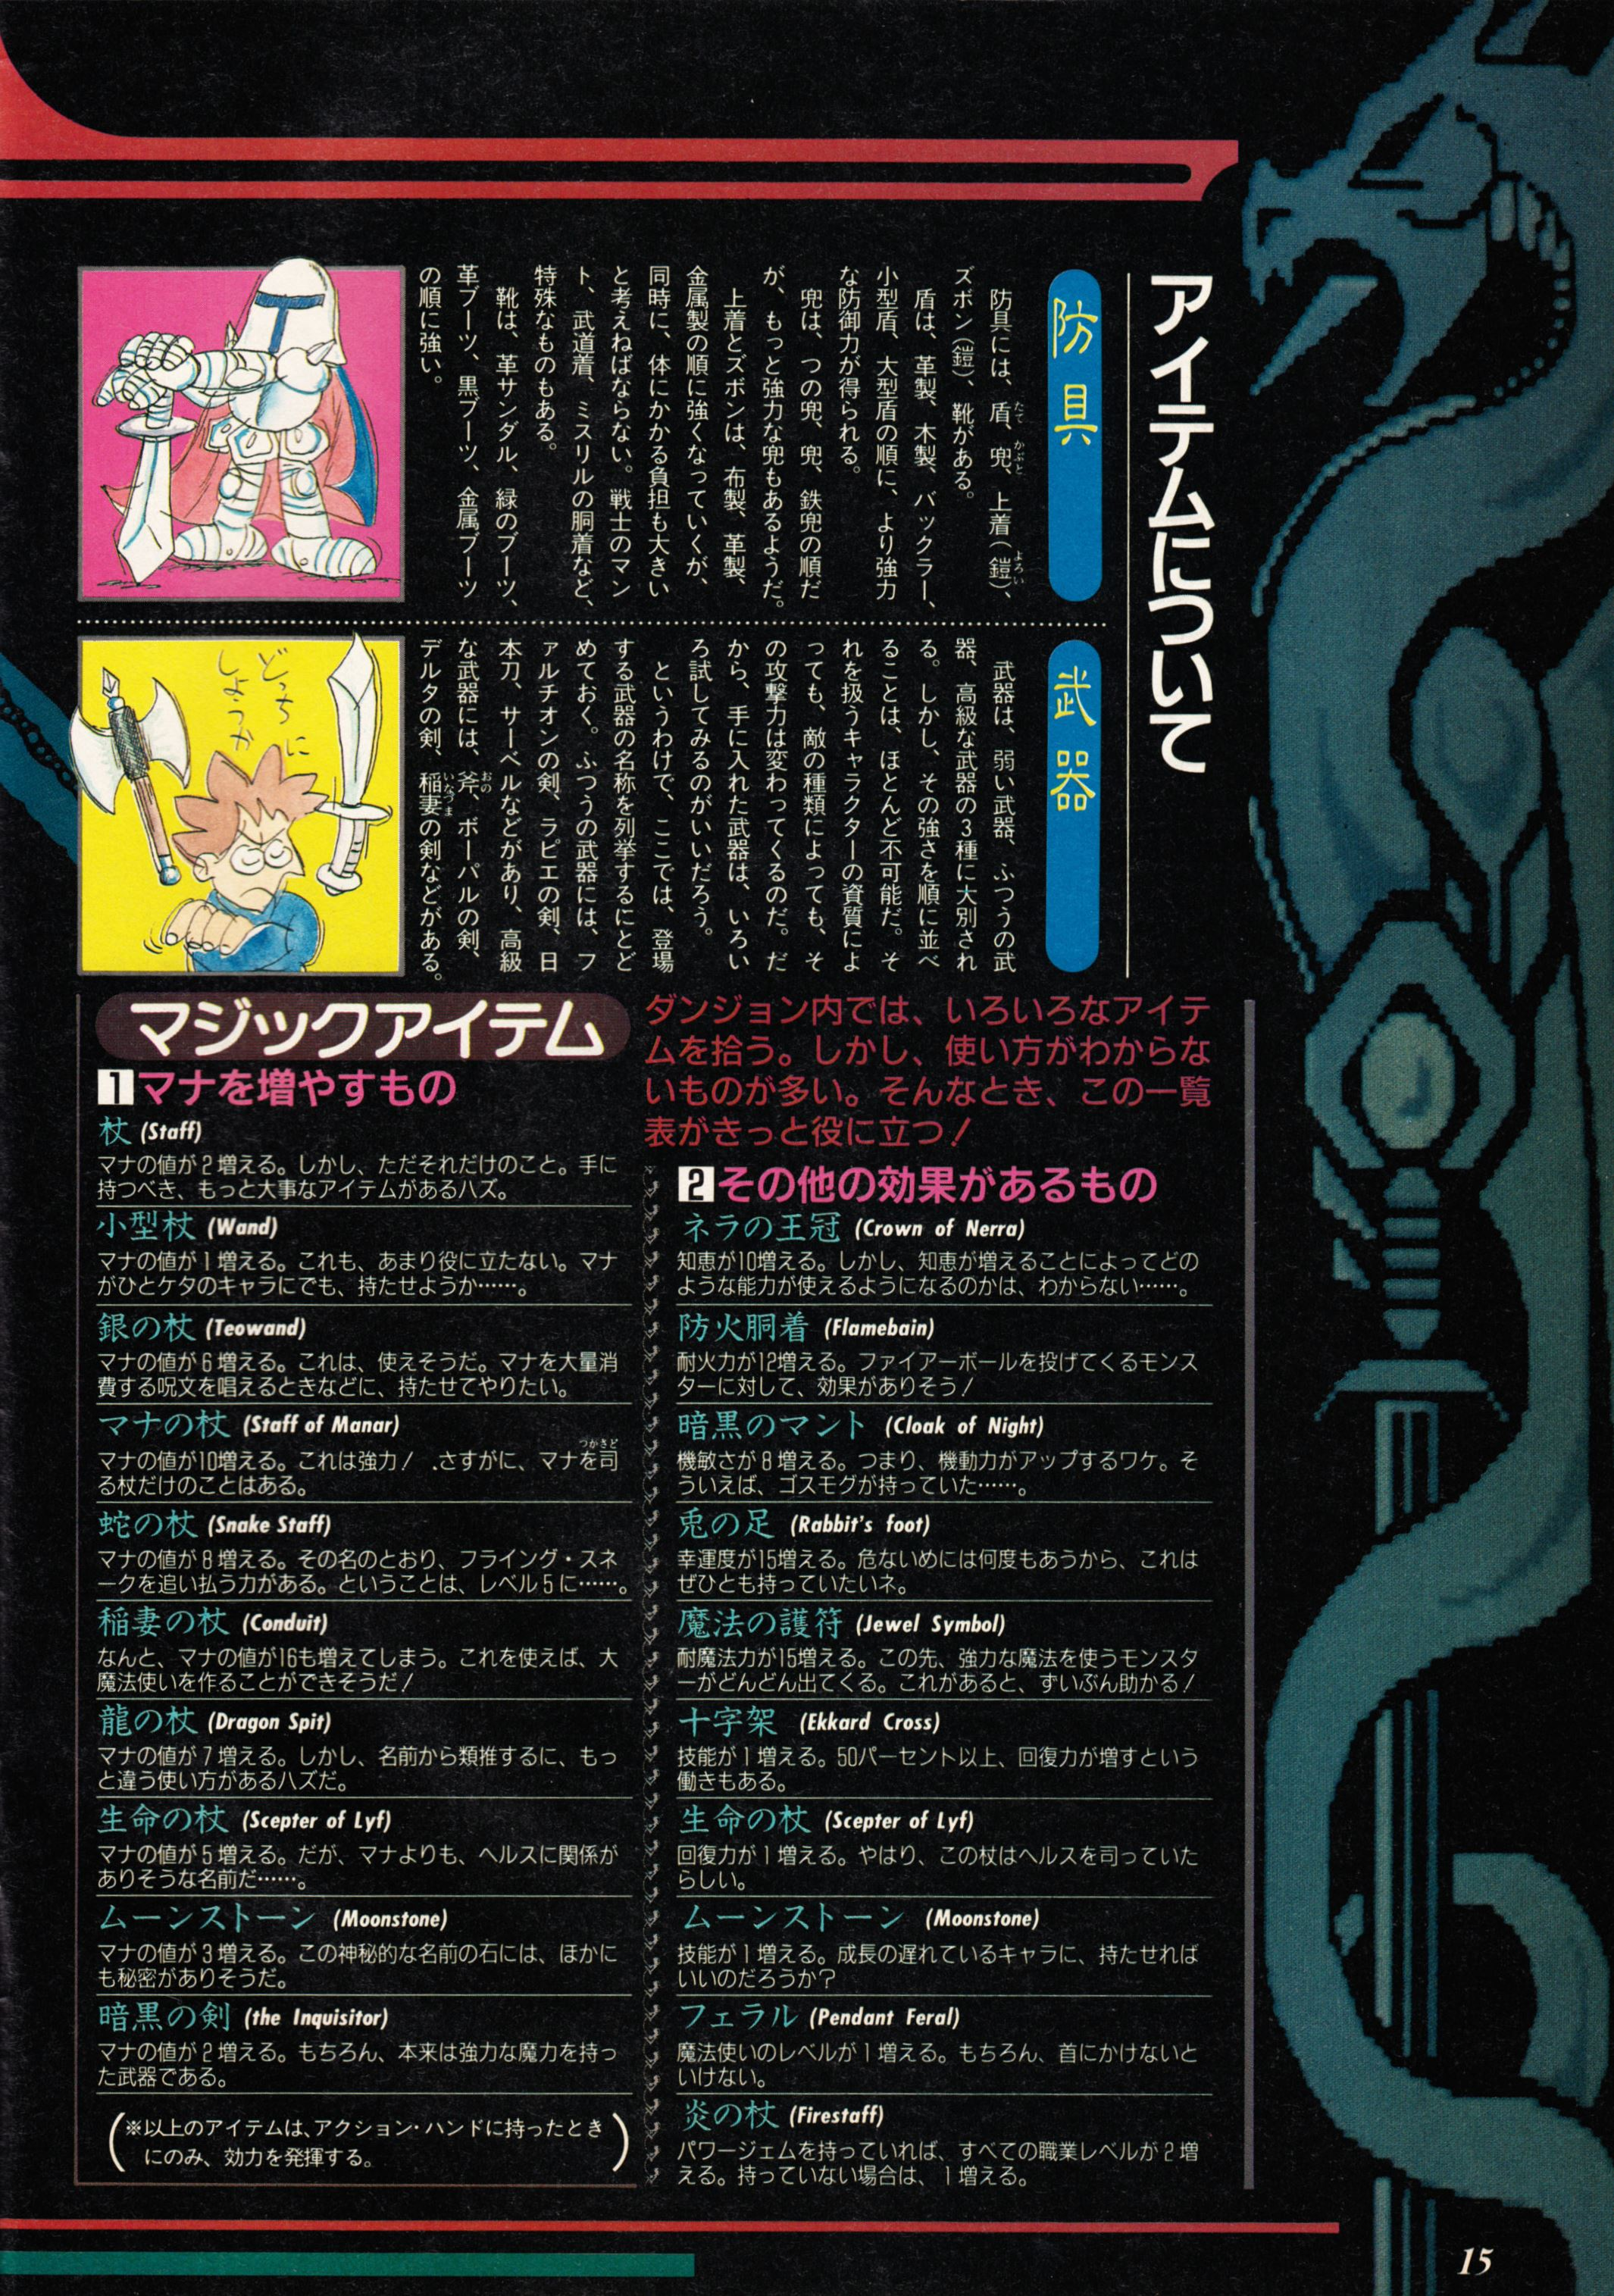 Supplement - Dungeon Master Companion Manual Guide published in Japanese magazine 'Popcom', Vol 4 No 1 01 April 1990, Page 17